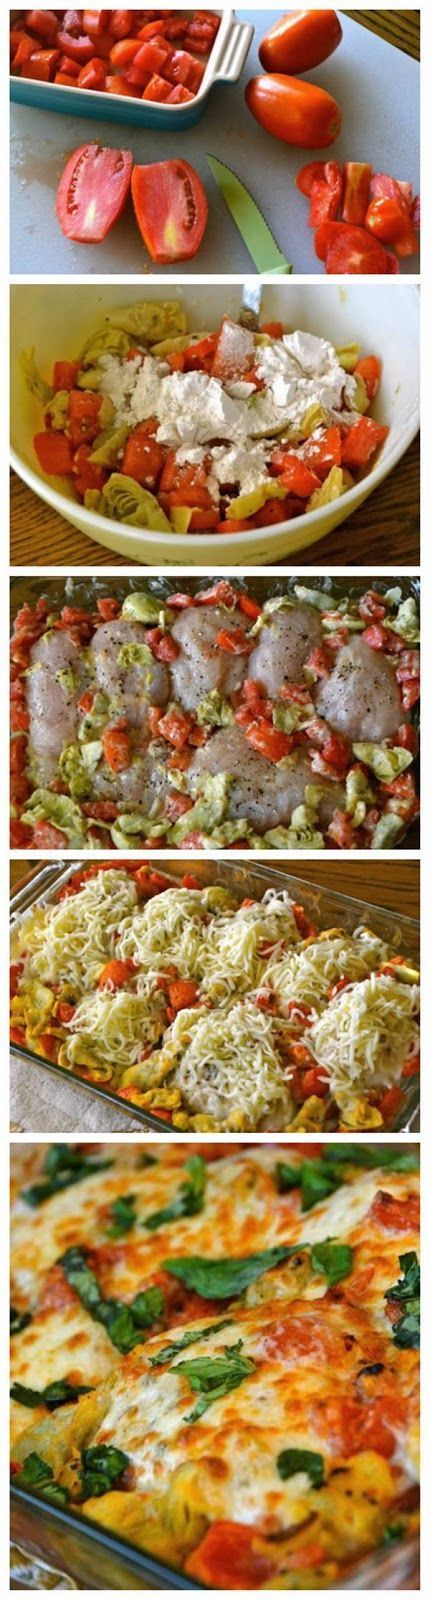 Easy Chicken Bake-Tomatoes, jar of artichoke hearts, ricotta cheese, chicken, mozzerella cheese and basil Like for more